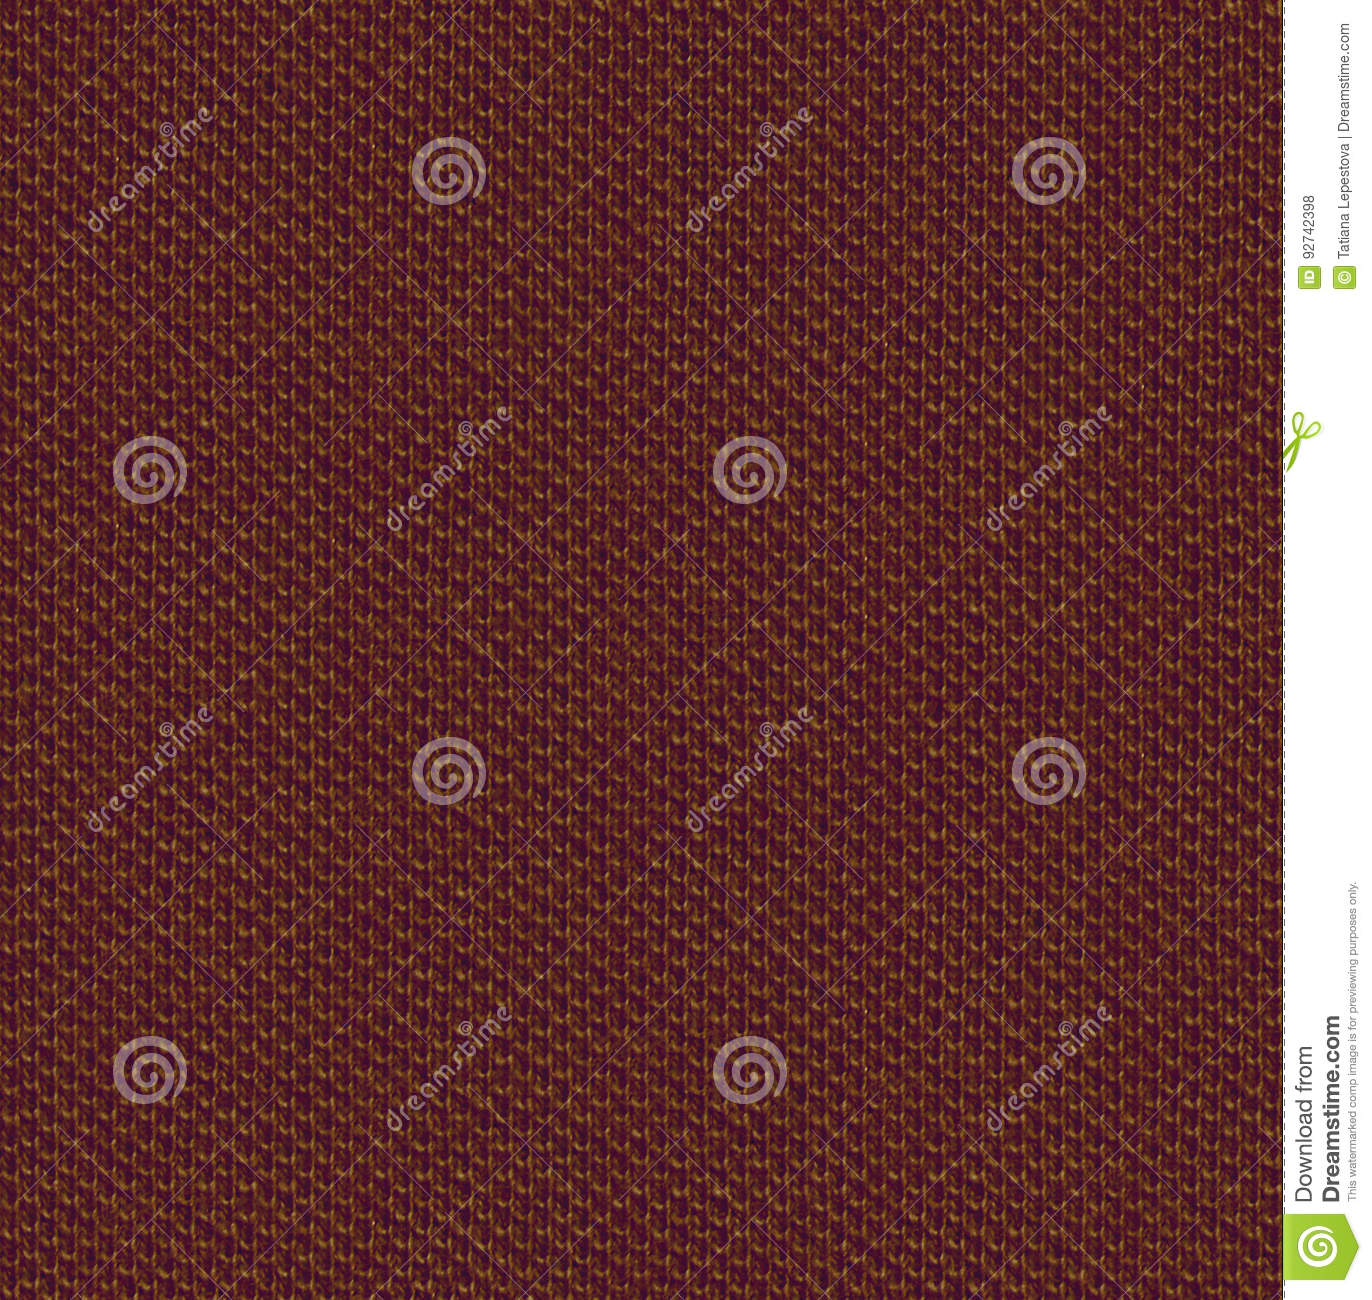 Brown Seamless Fabric Textures Fabric Texture 3 Diffuse Seamless Map Brown Stock Photo Image